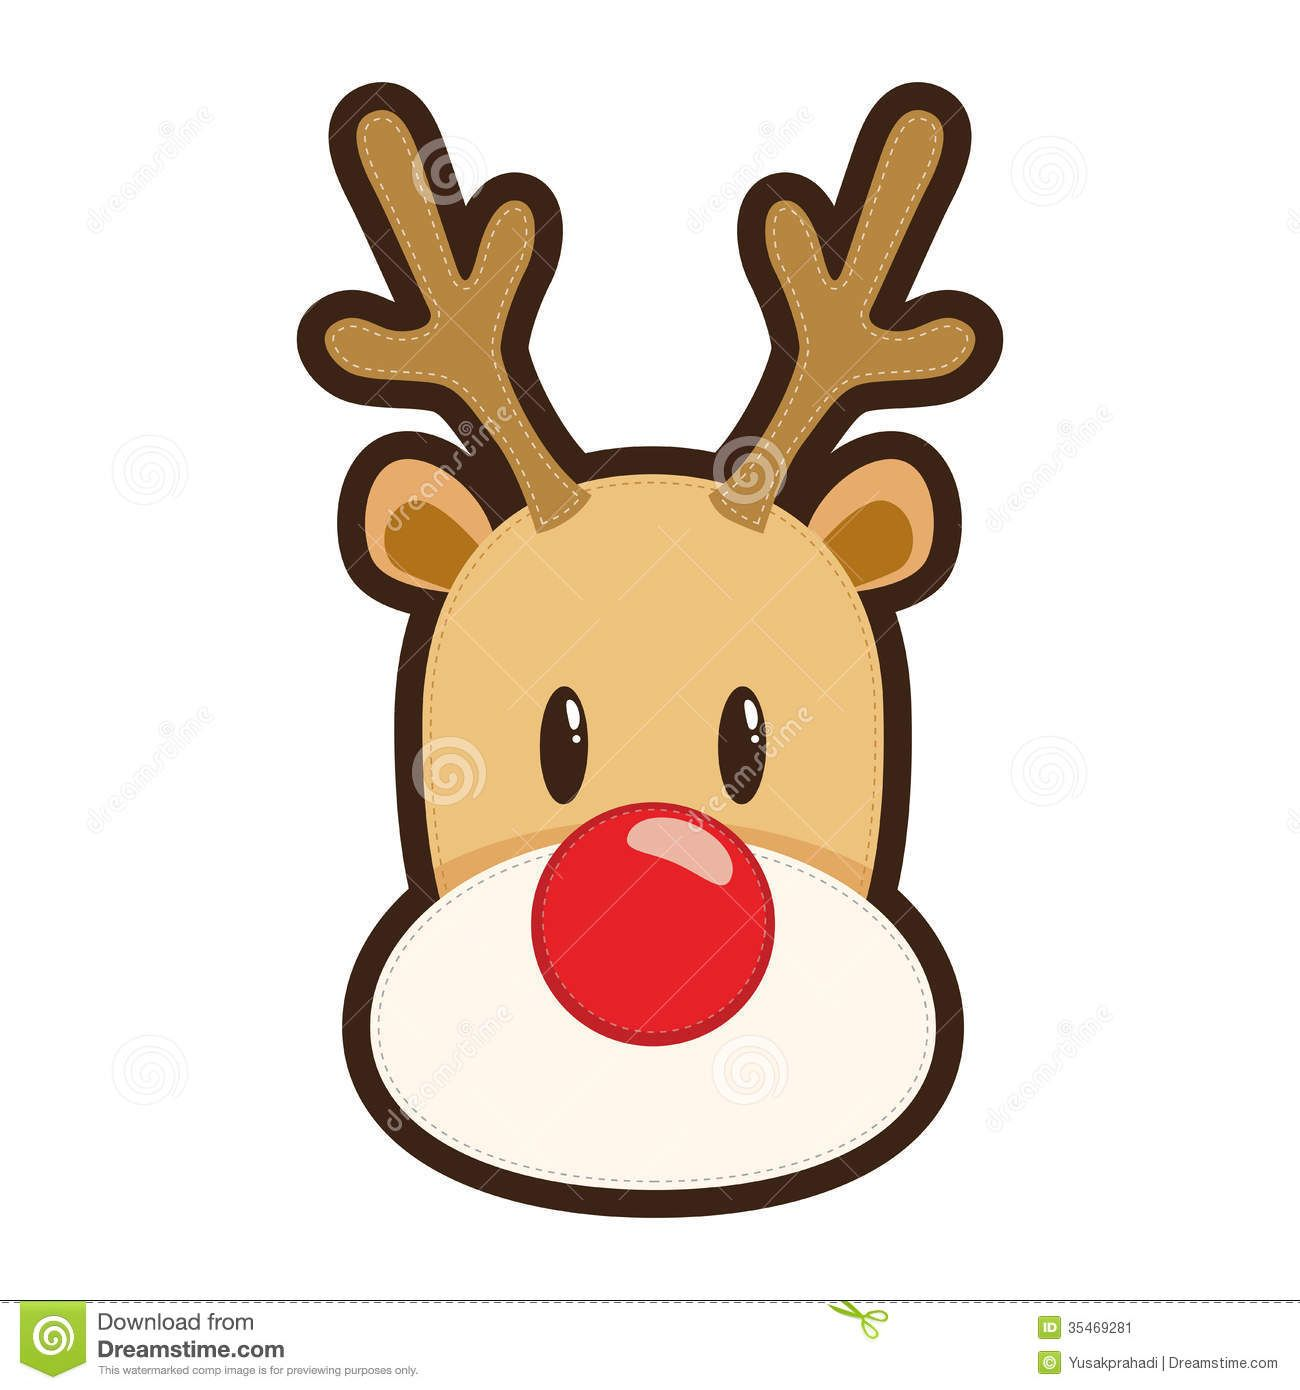 Christmas Reindeer Cartoon.Cartoon Illustration Of Rudolph The Red Nosed Reindeer White